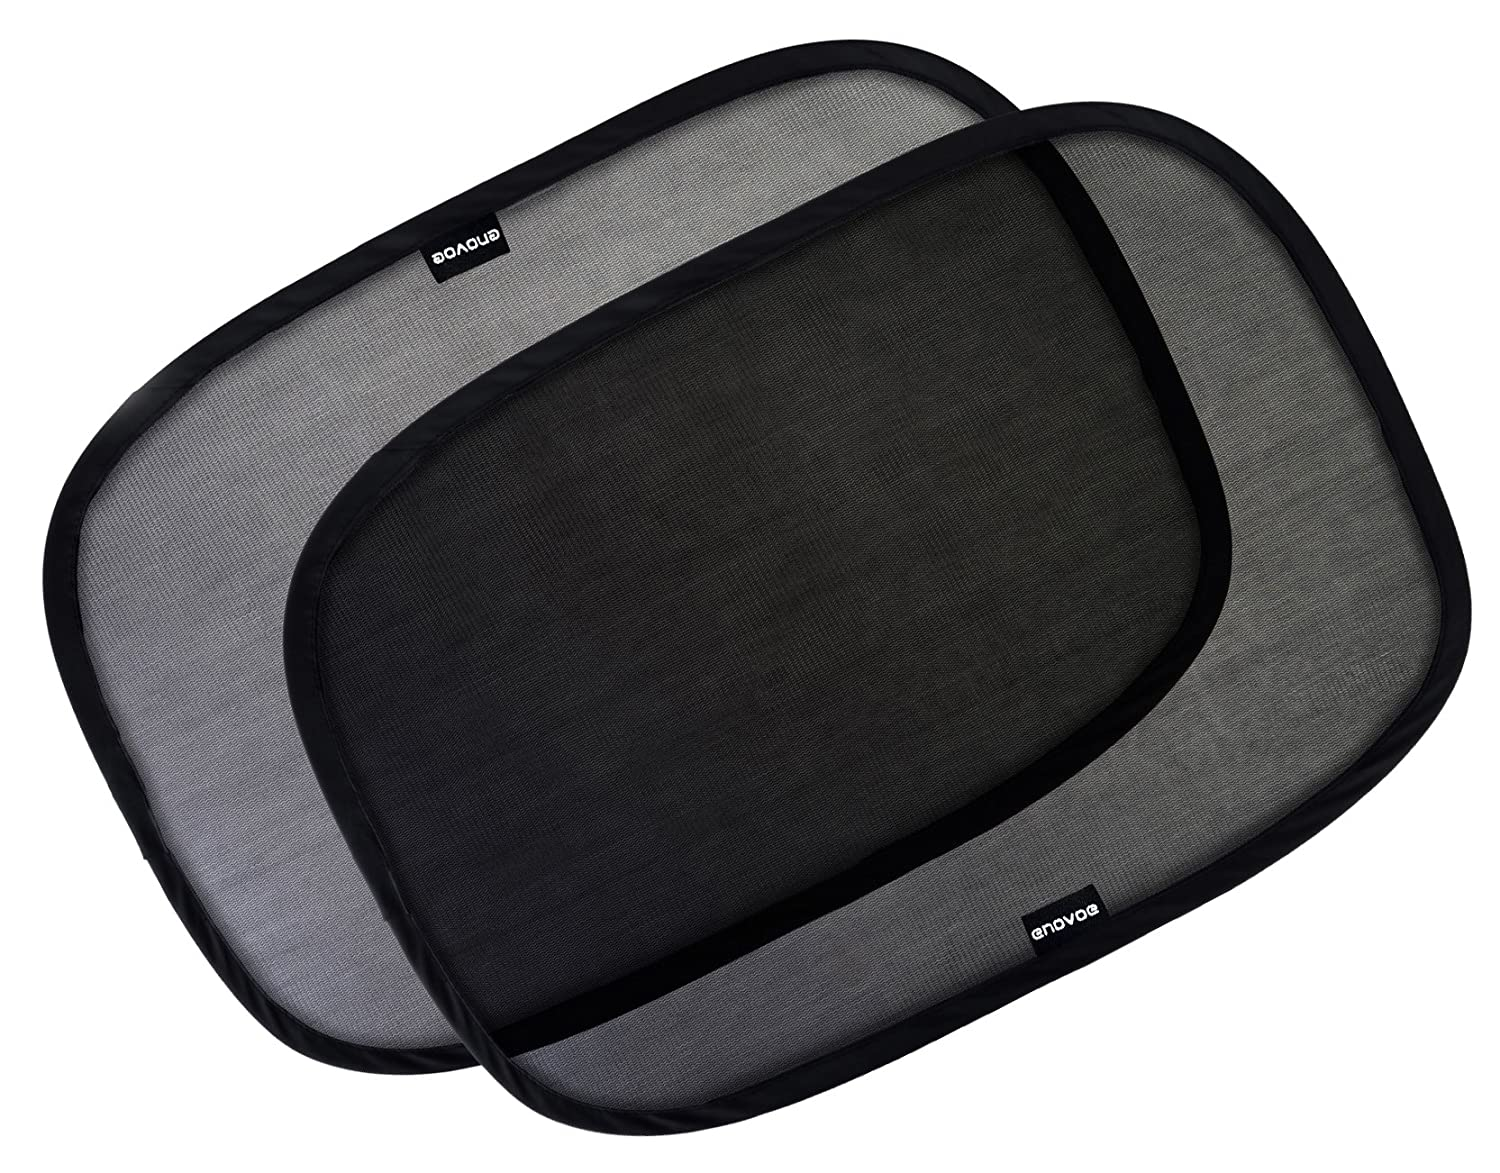 Cling Sunshade